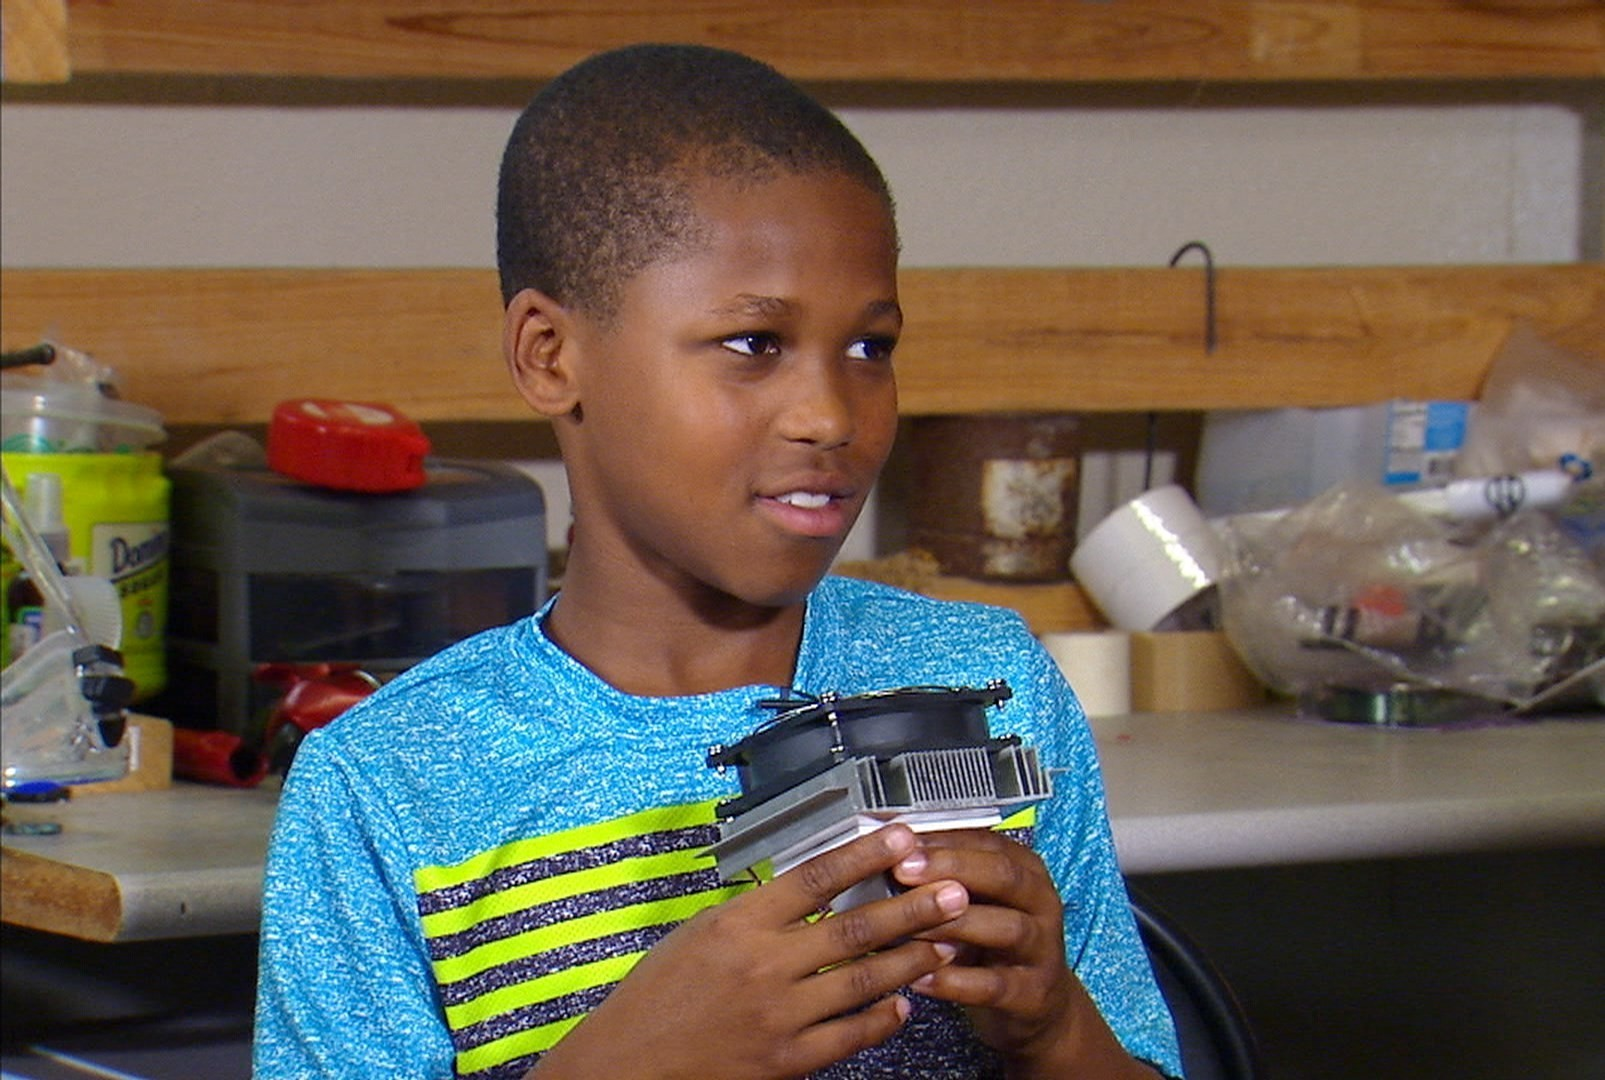 At 12-Years-Old He Patented Invention To Stop Child Hot Car Deaths